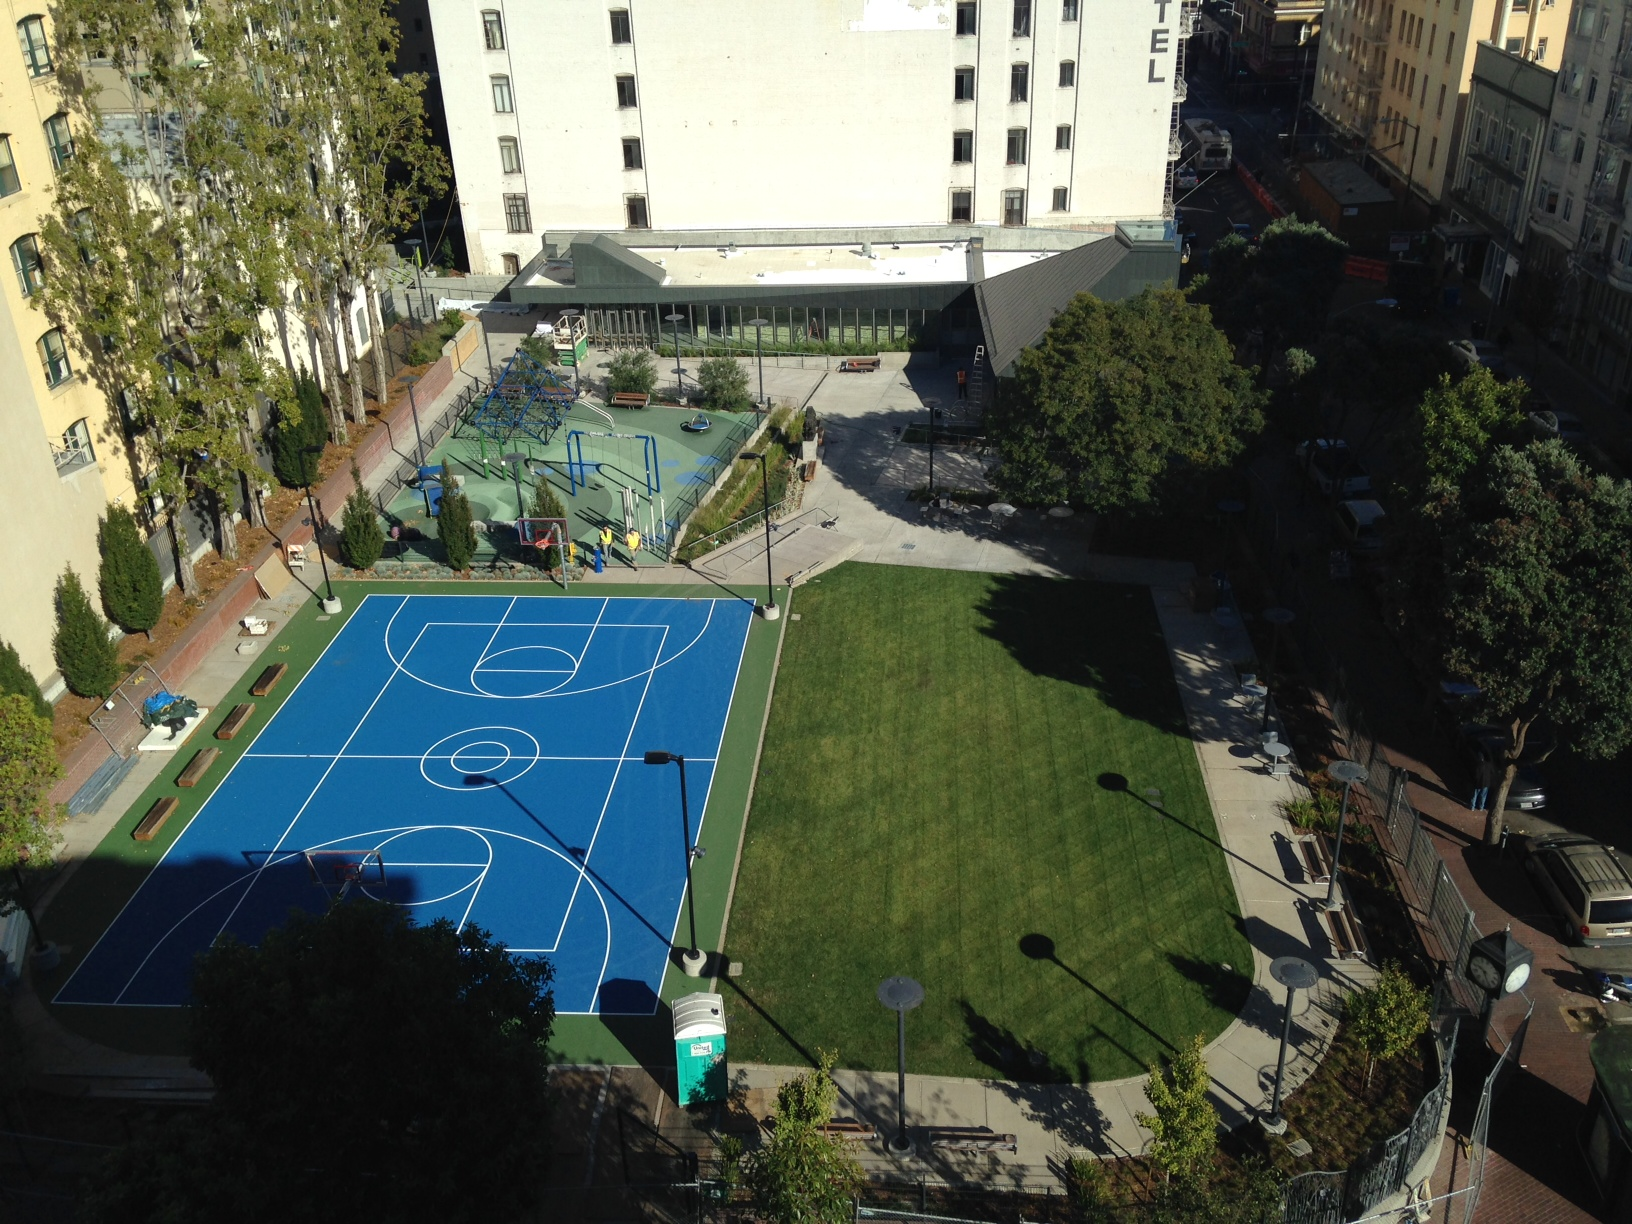 Father Alfred E. Boeddeker Park is a small urban park offering play facilities for kids, a basketball court, and community clubhouse.